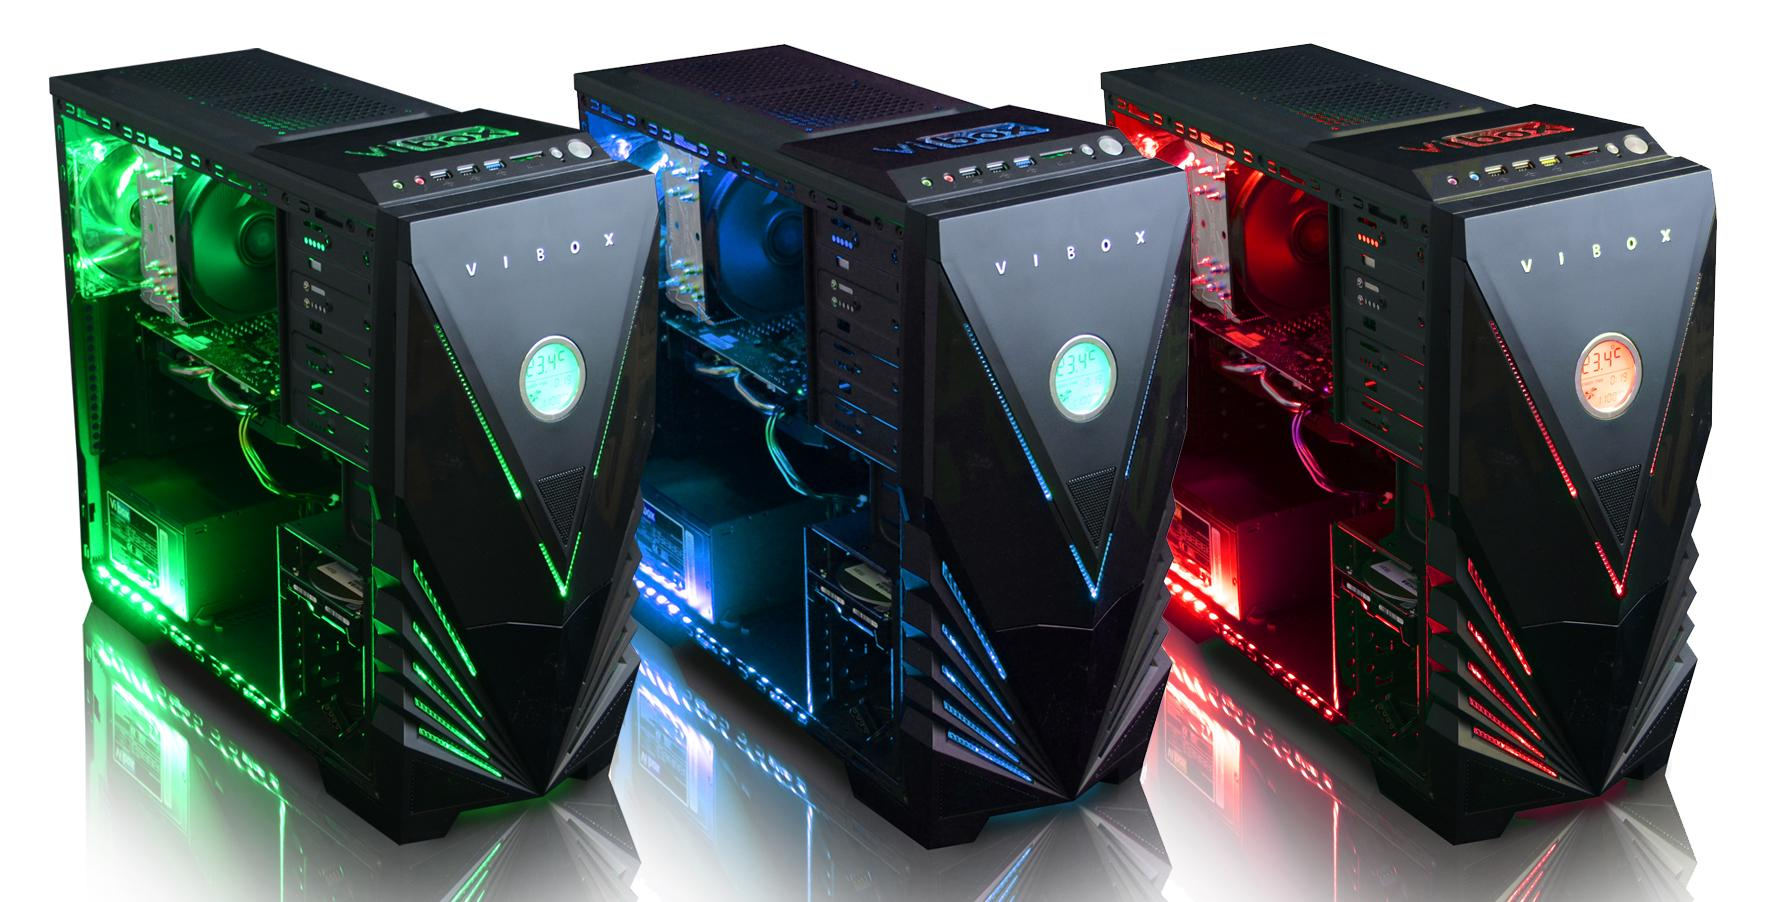 Vibox Computers On Twitter Quot Our Range Of Best Selling Led